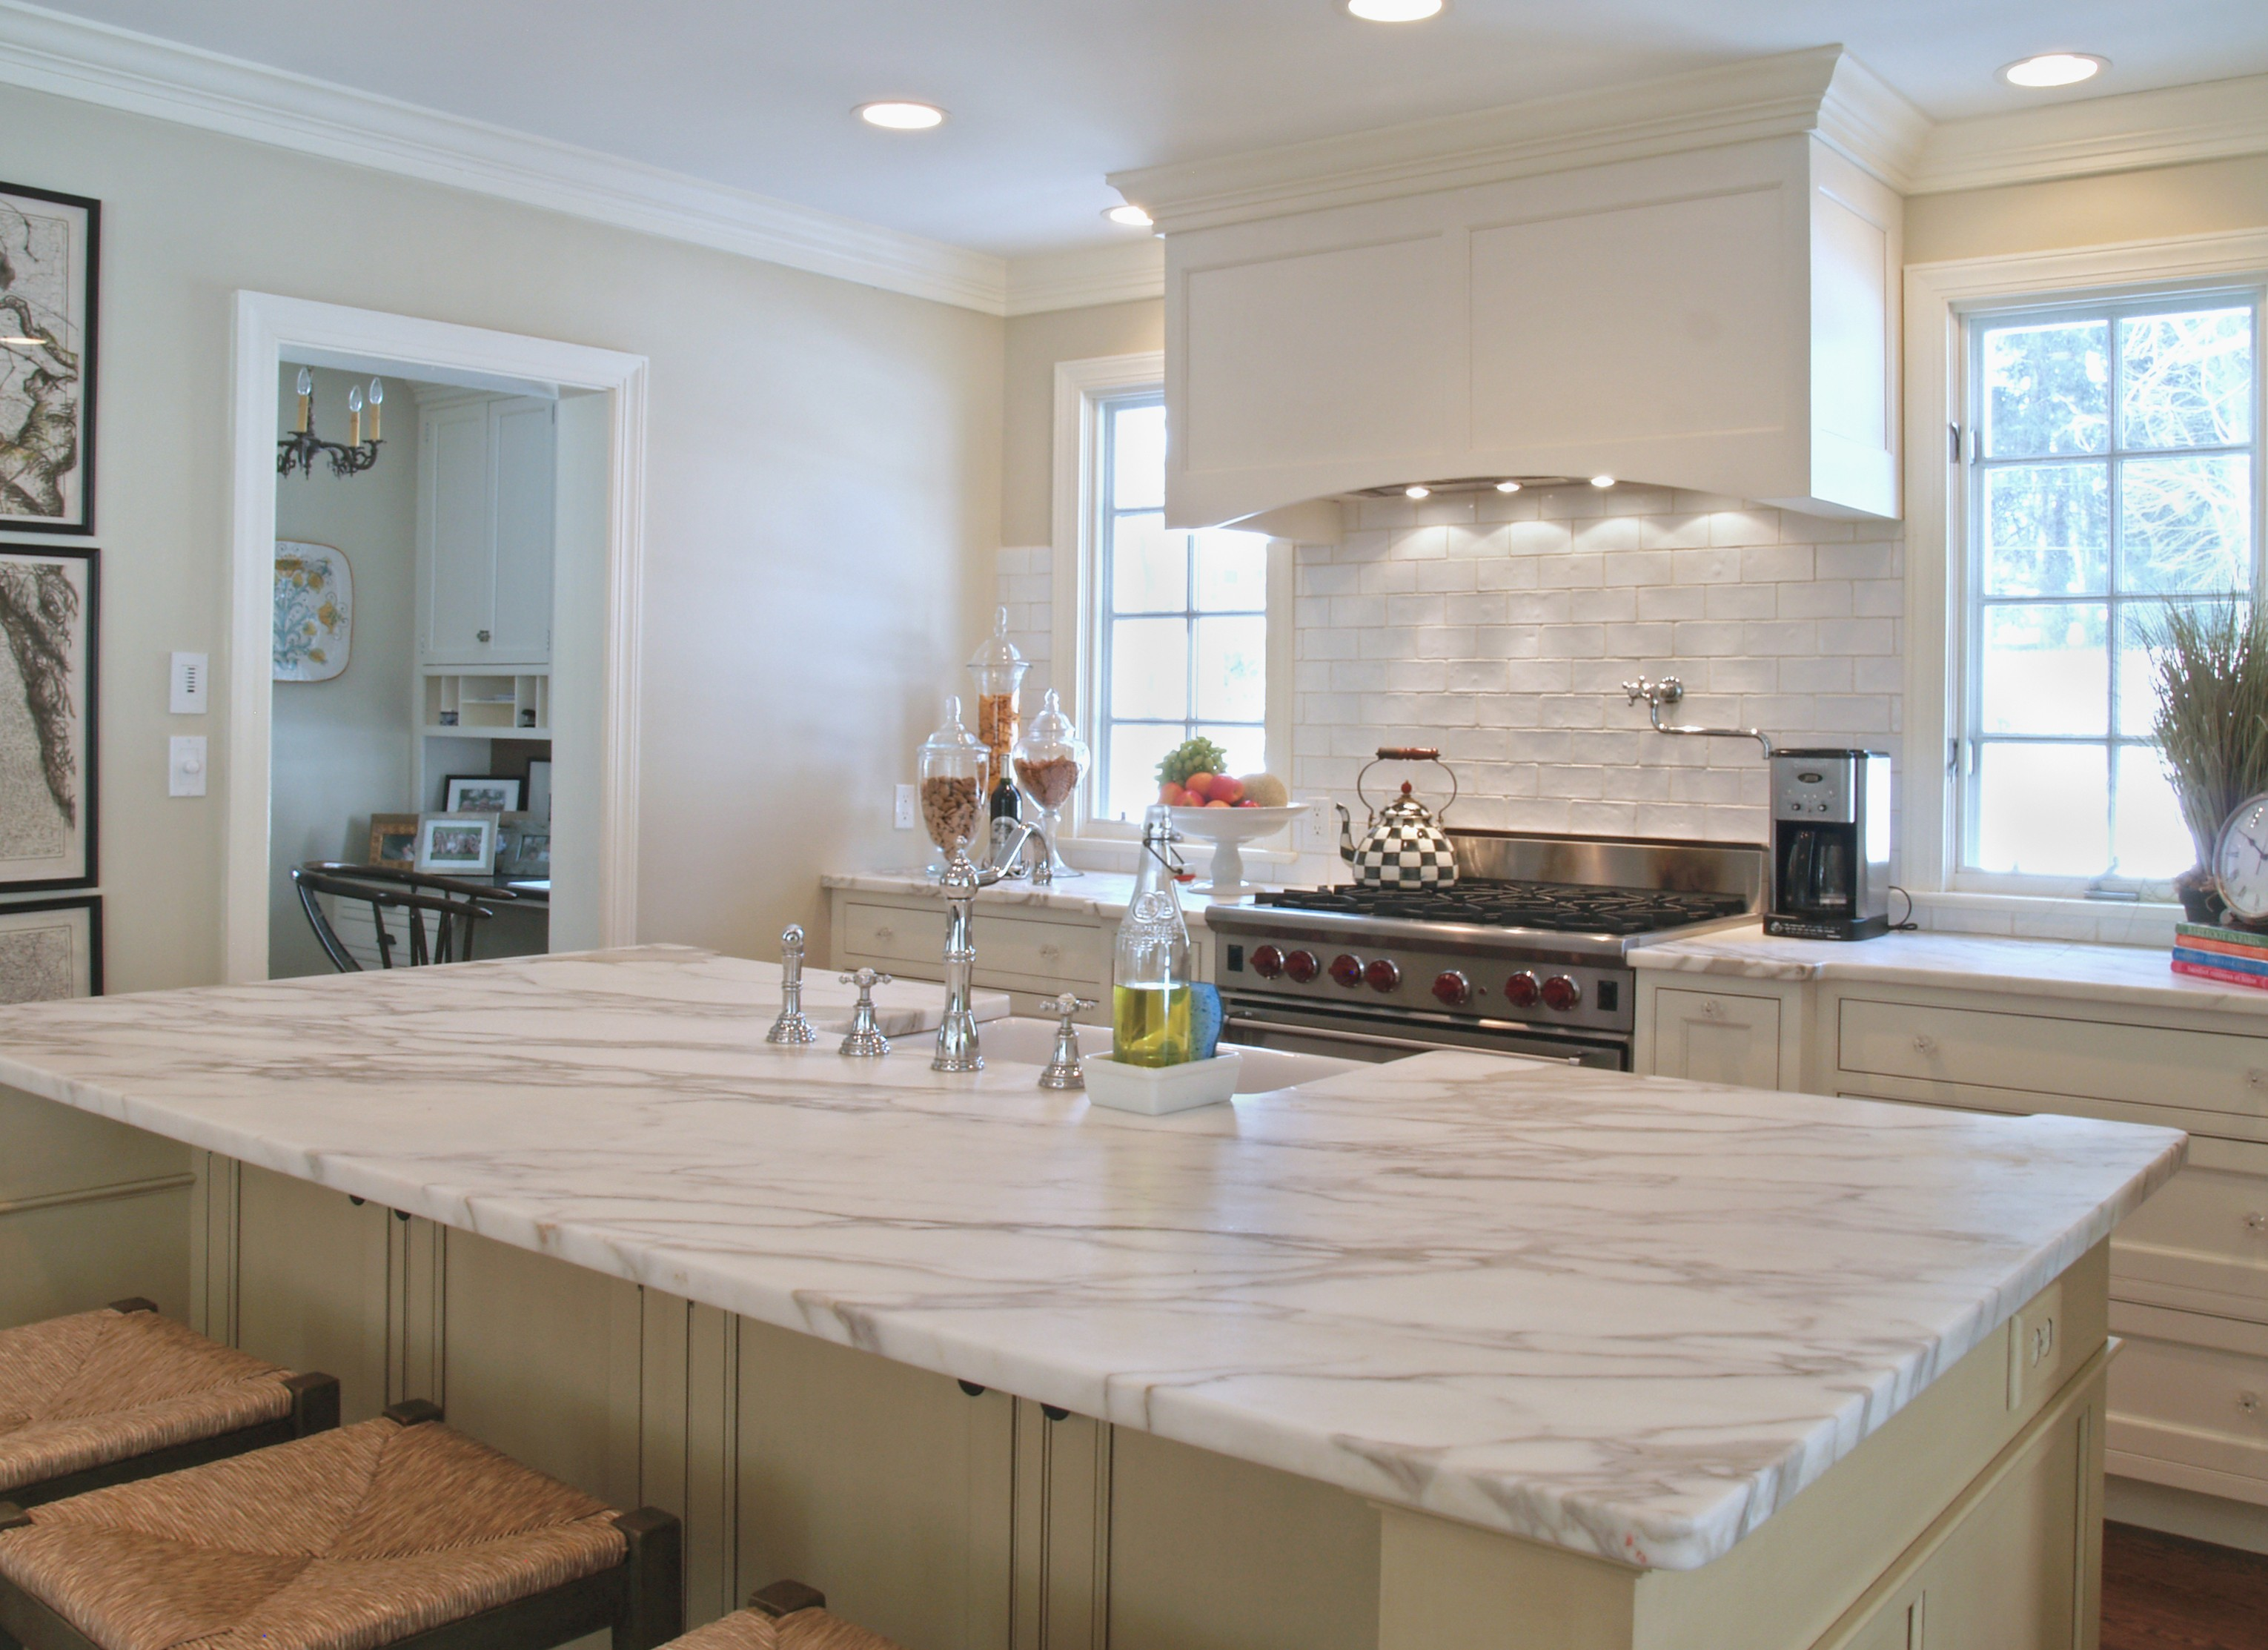 Kitchen Countertops and Surfaces - SoFlo Kitchen Remodeling & Custom Cabinet Installation - backsplashes, flooring, countertops